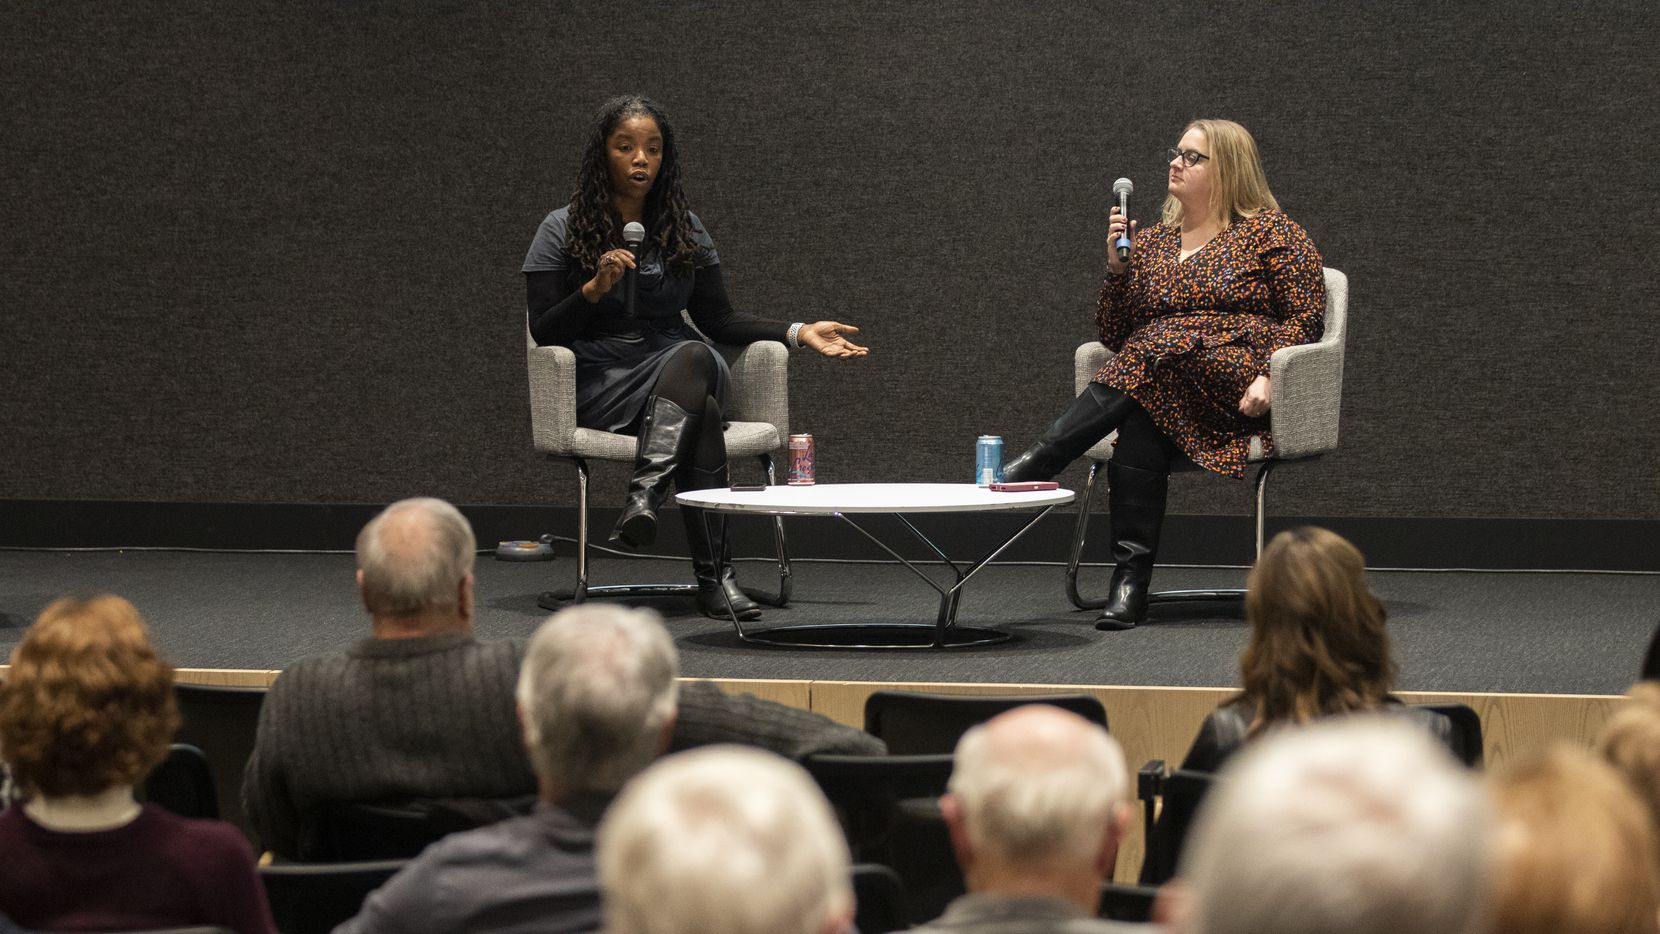 "Marcia Allert, director of visual journalism, (left) and Jennifer Emily, enterprise reporter, discuss the DMN audio report ""The Death of Botham Jean: Amber Guyger on Trial"" during the Duets - True Crime conversation on Nov. 12, 2019 in the DMN auditorium in Dallas."